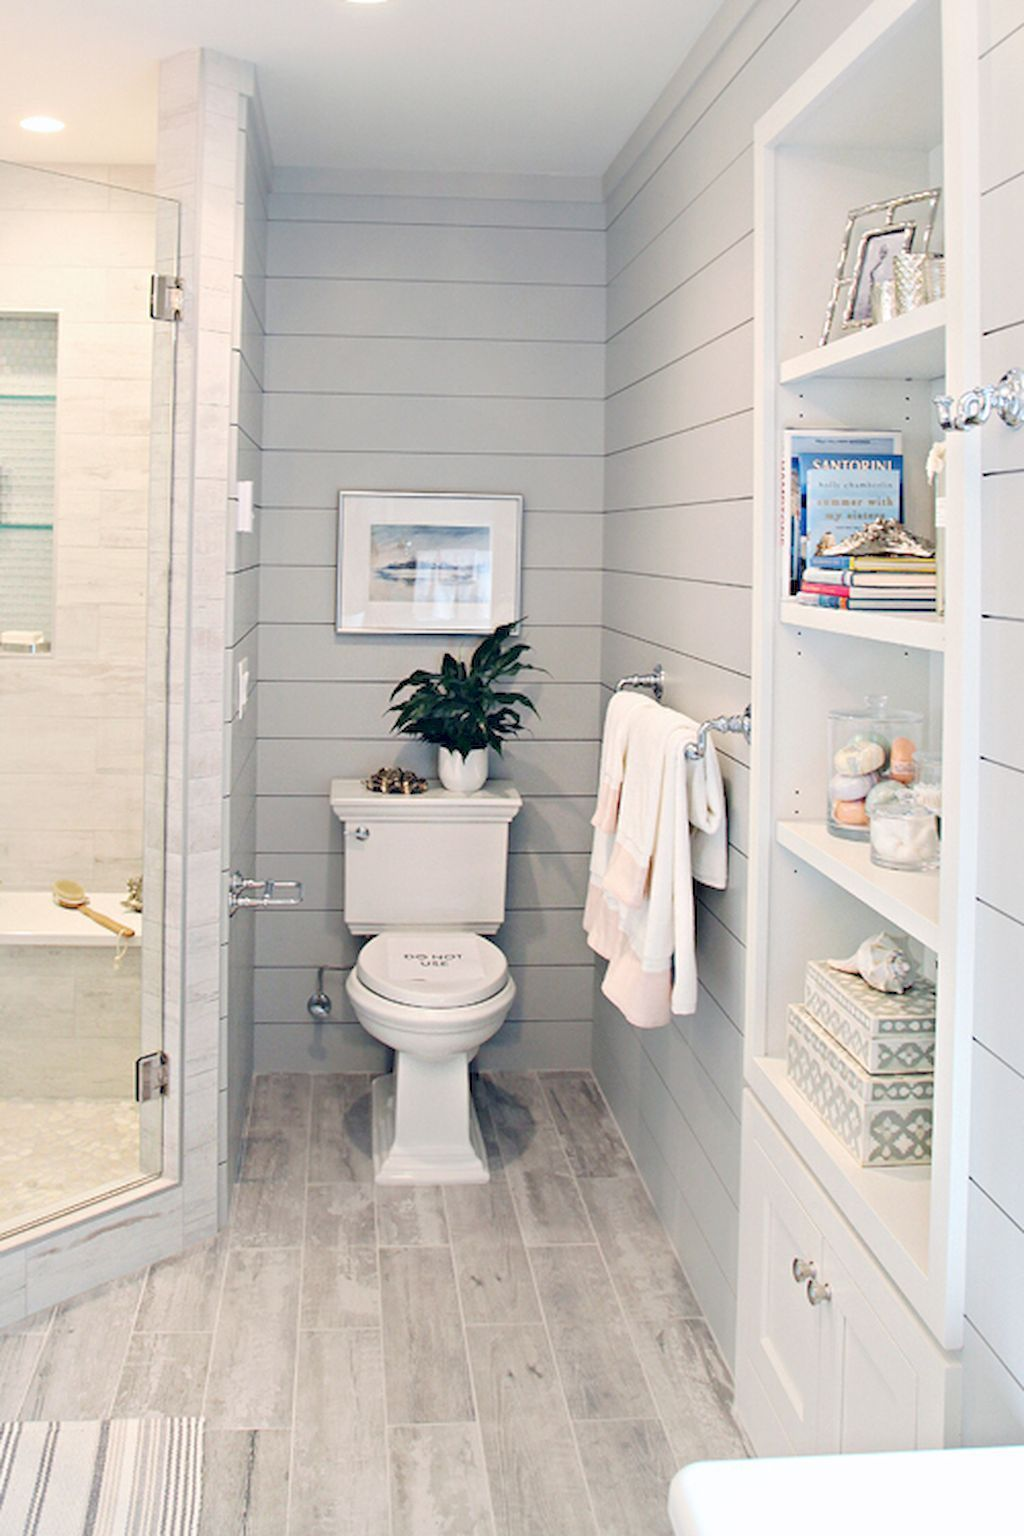 Ordinary Bathroom Remodeling Ideas On A Budget #11 - Gorgeous 50 Best Small Bathroom Remodel Ideas On A Budget  Https://lovelyving.com/2017/09/30/50-best-small-bathroom-remodel-ideas- Budget/